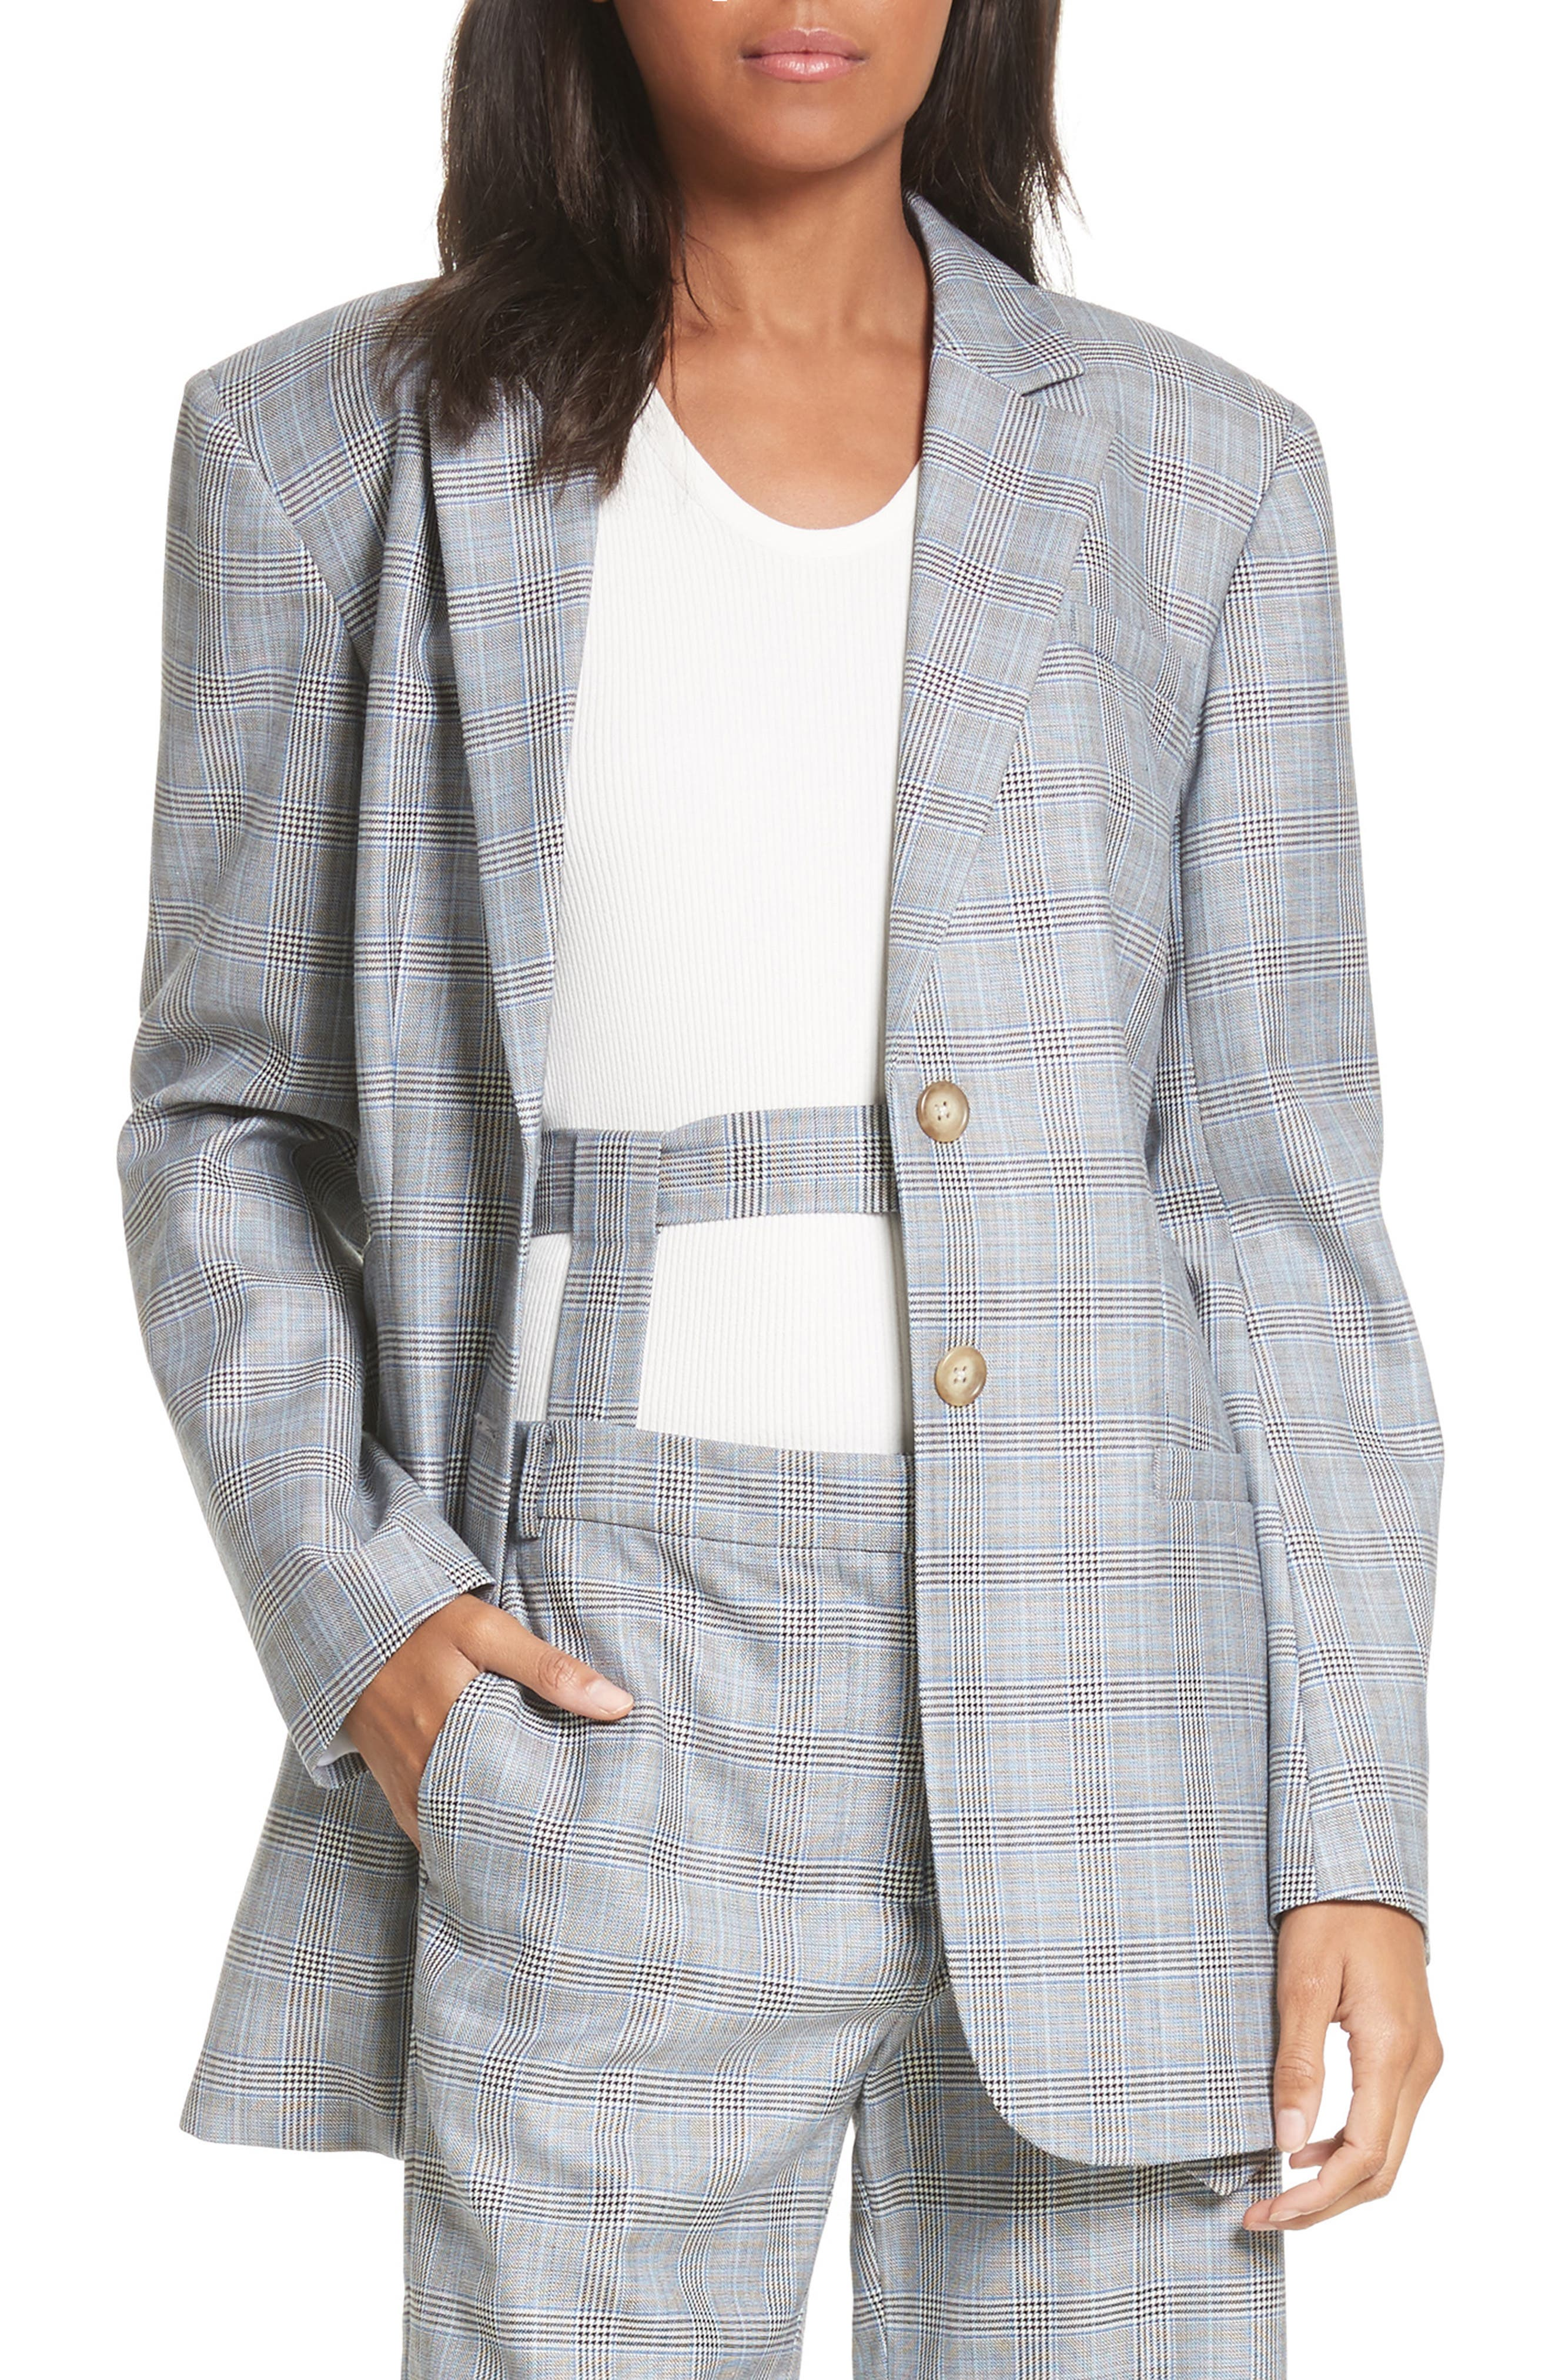 Tibi Side Cutout Blazer